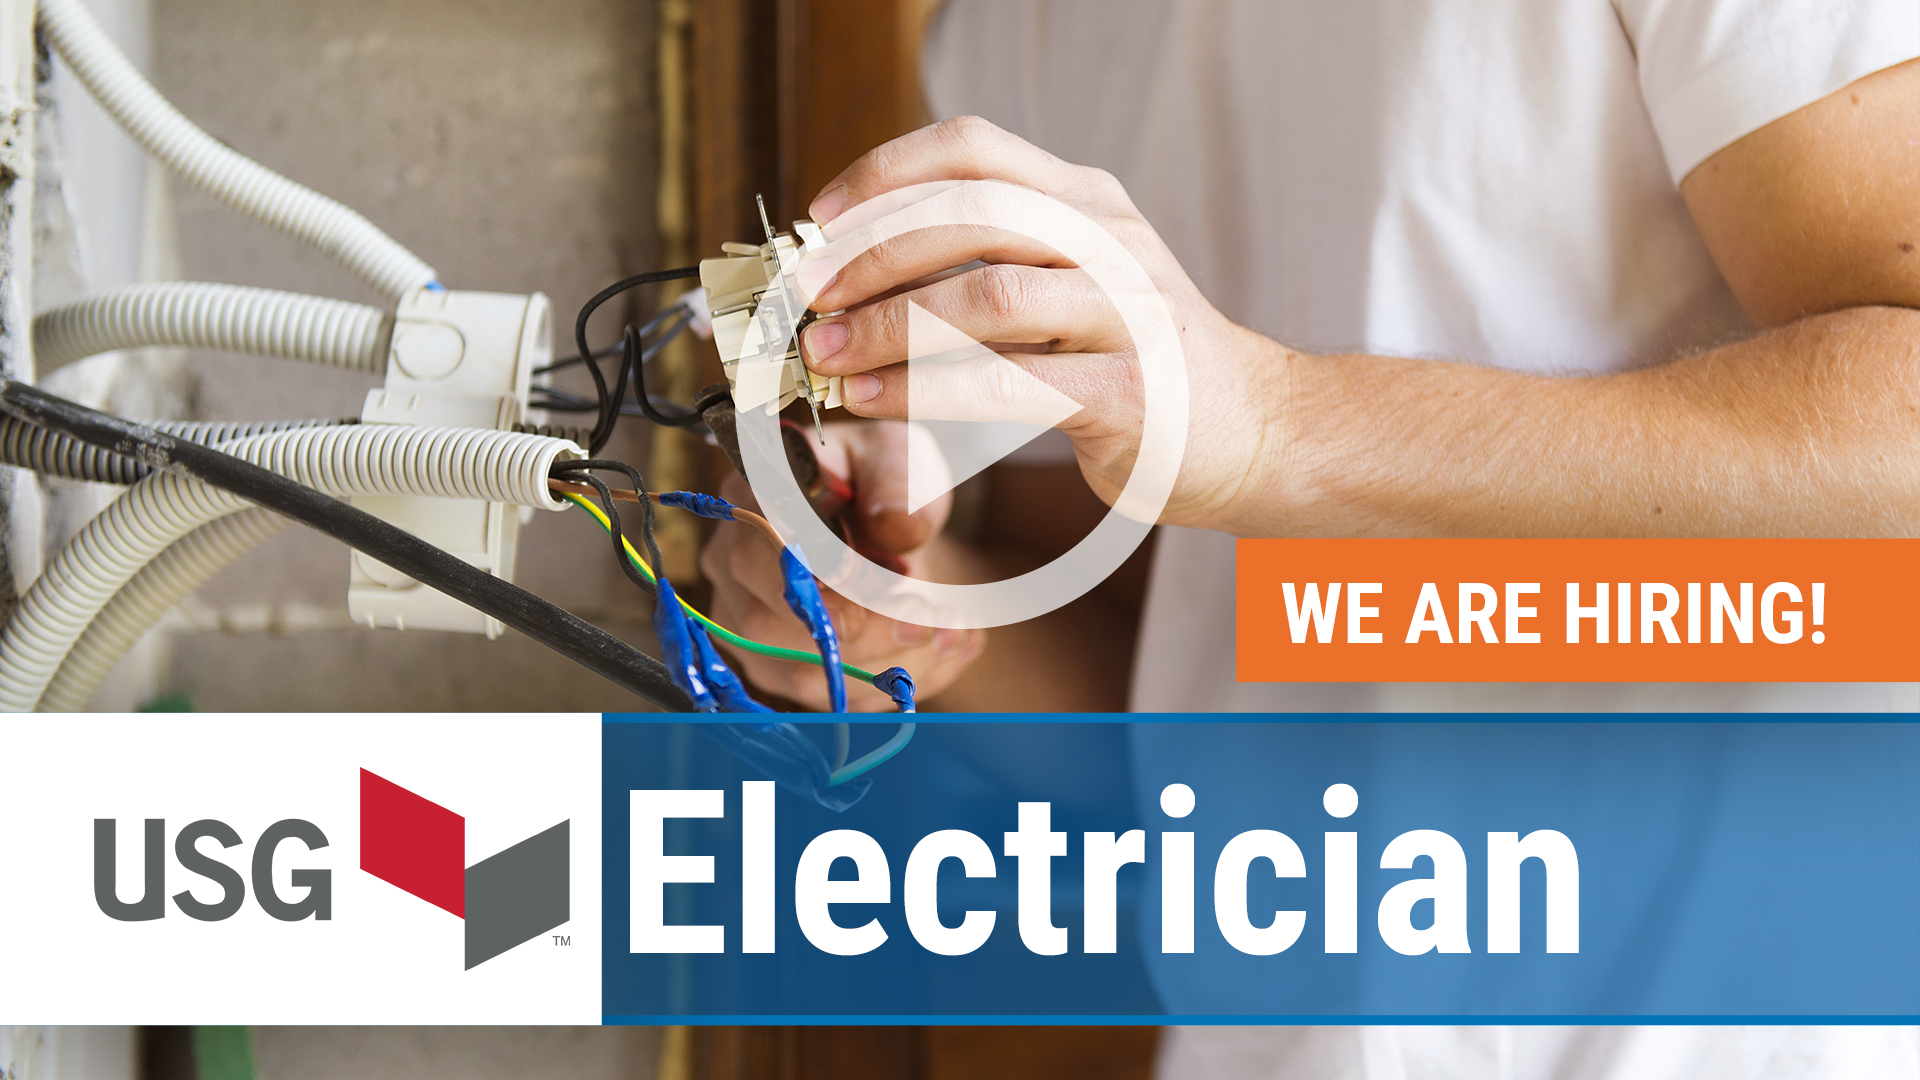 Watch our careers video for available job opening Electrician in Gypsum, OH